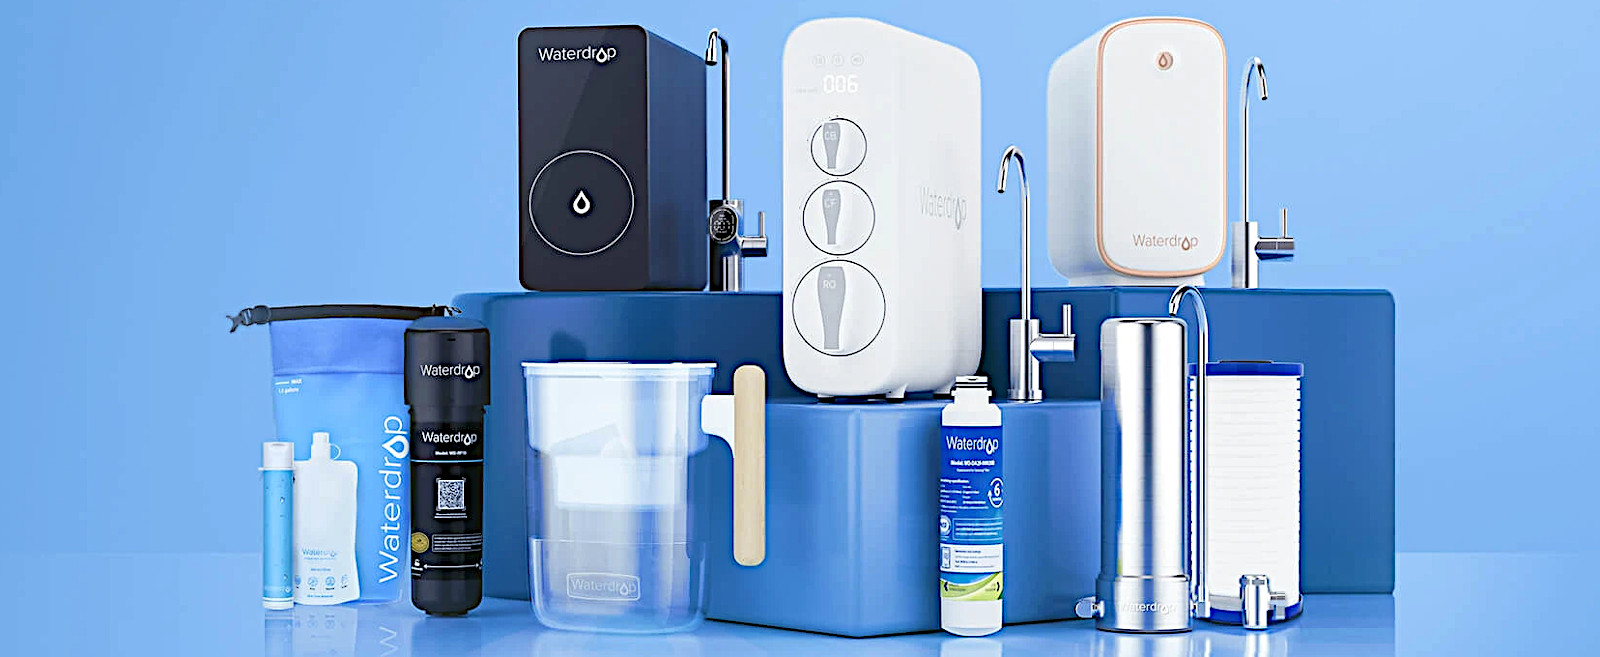 Competitive complete water filtration solutions